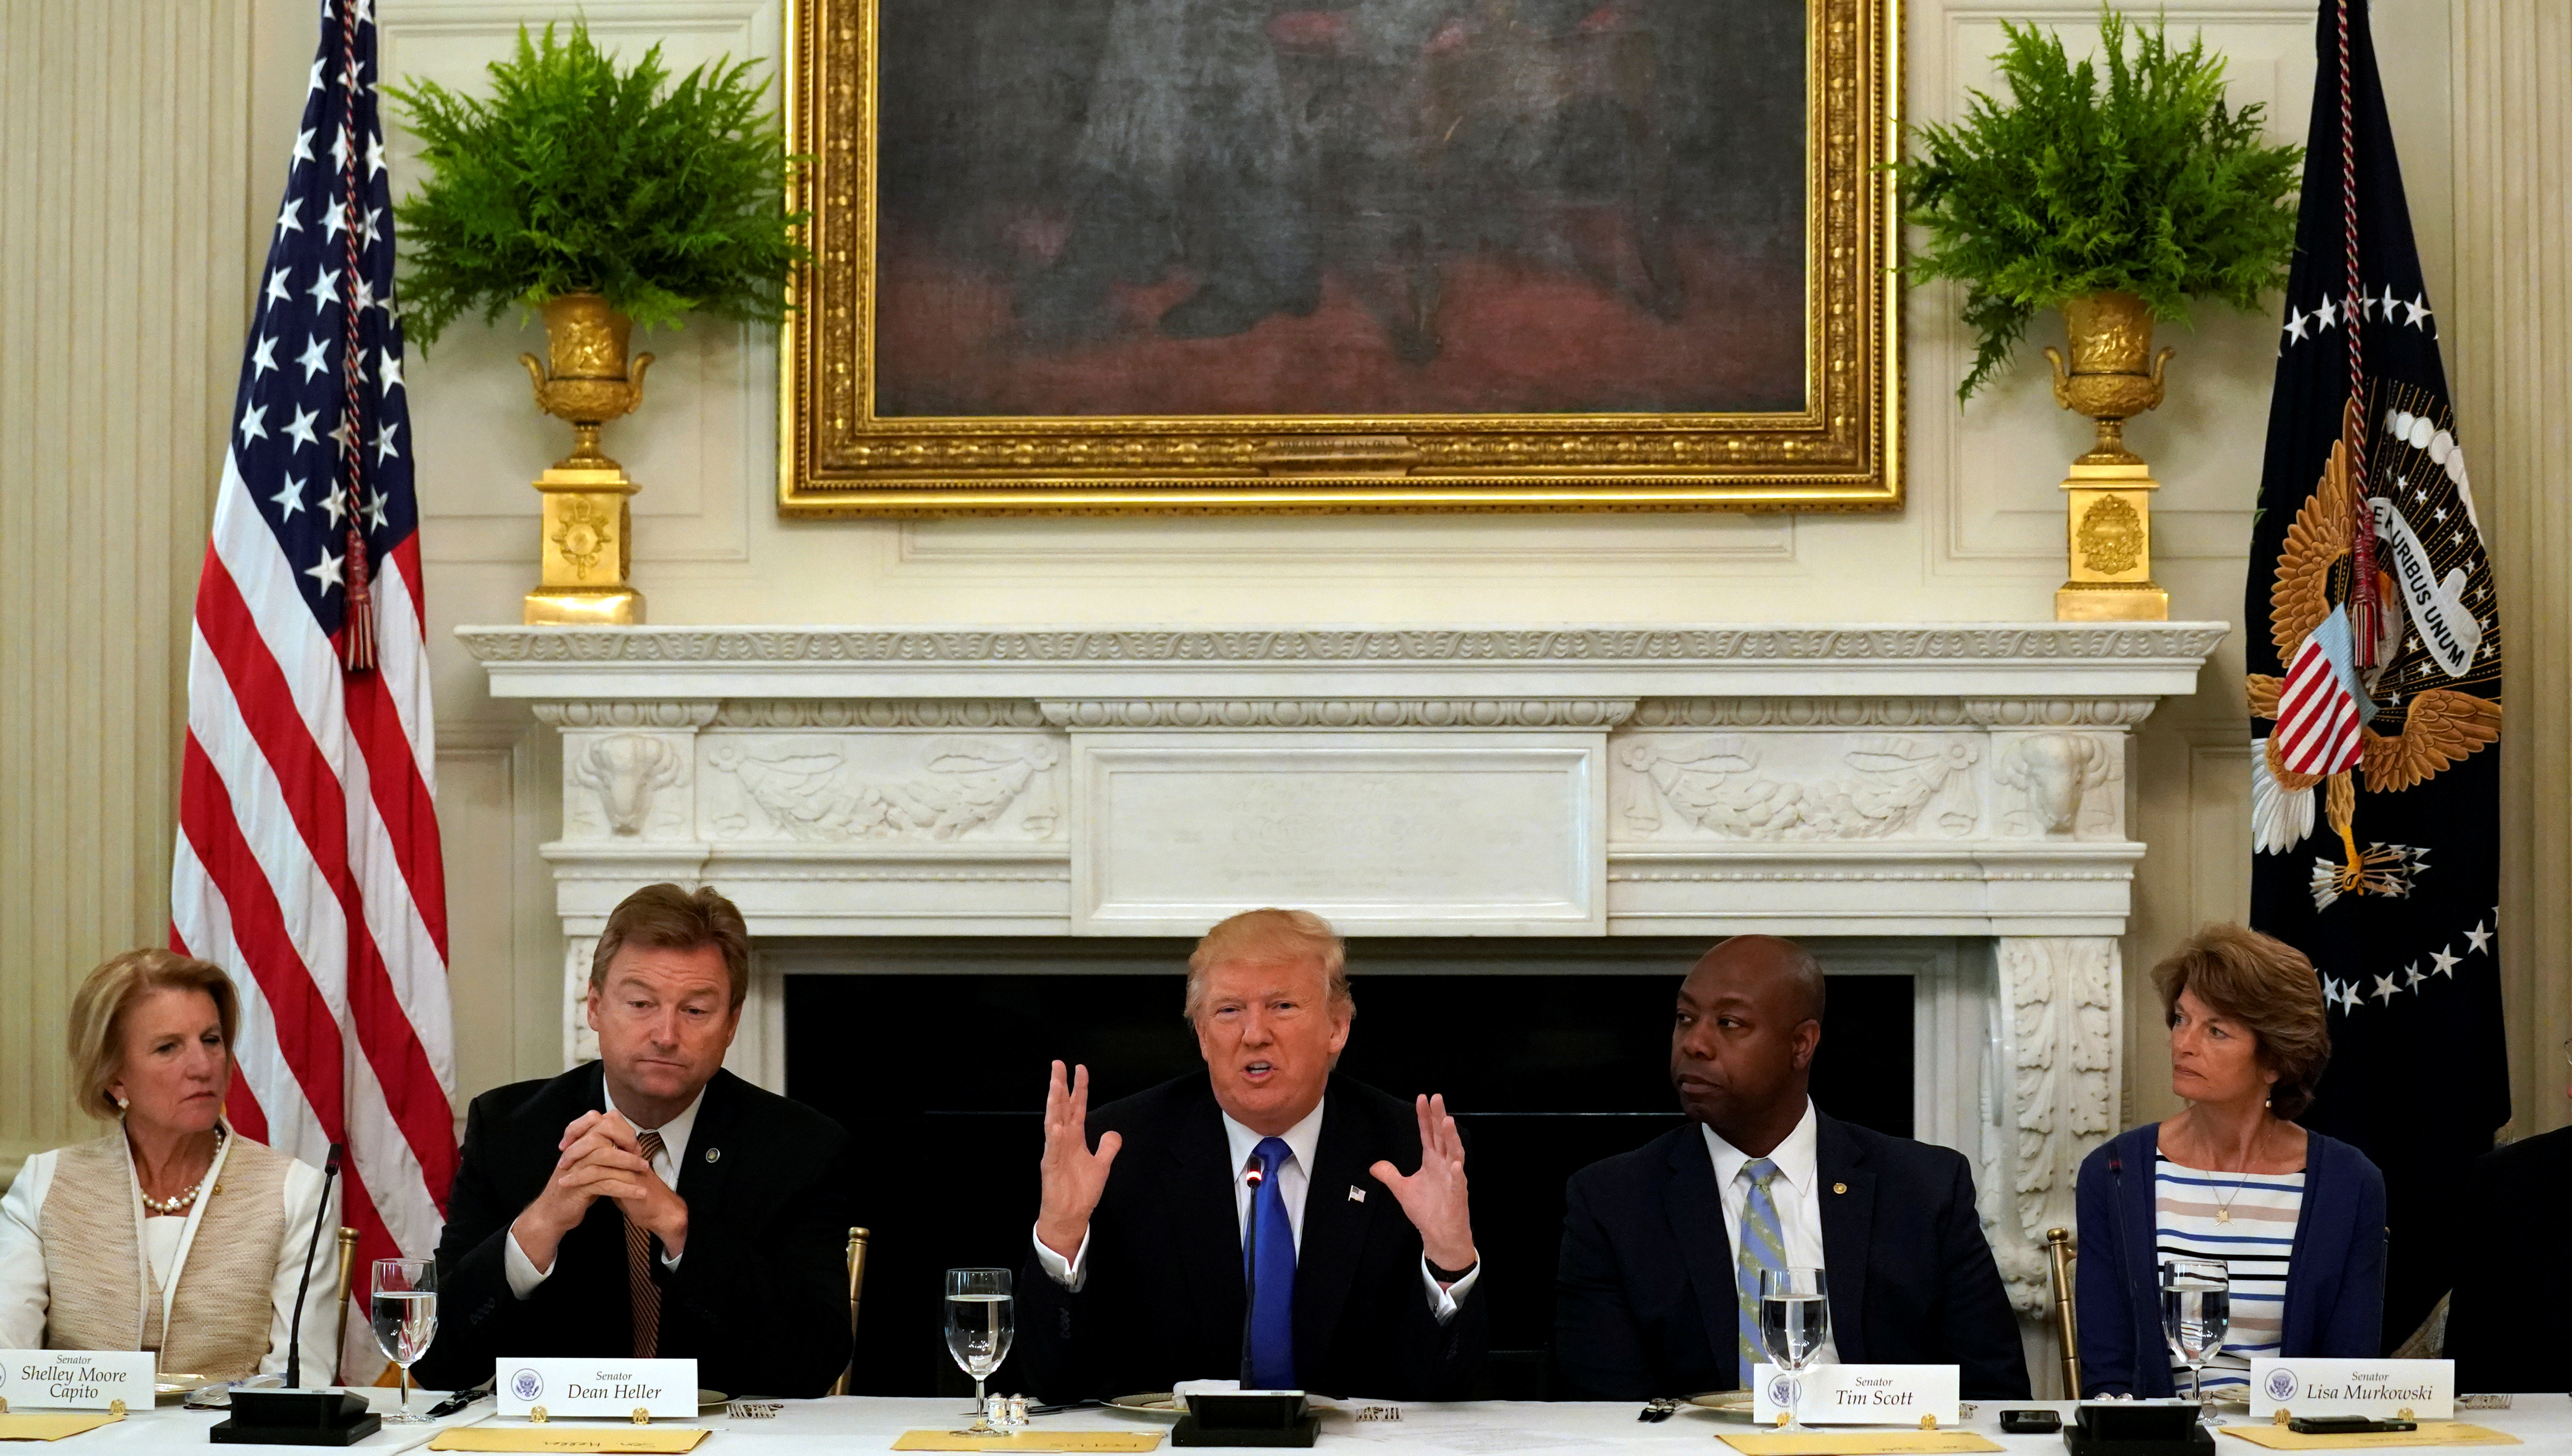 U.S. President Donald Trump speaks during a lunch meeting with Senate Republicans to discuss health care at the White House in Washington, July 19, 2017.